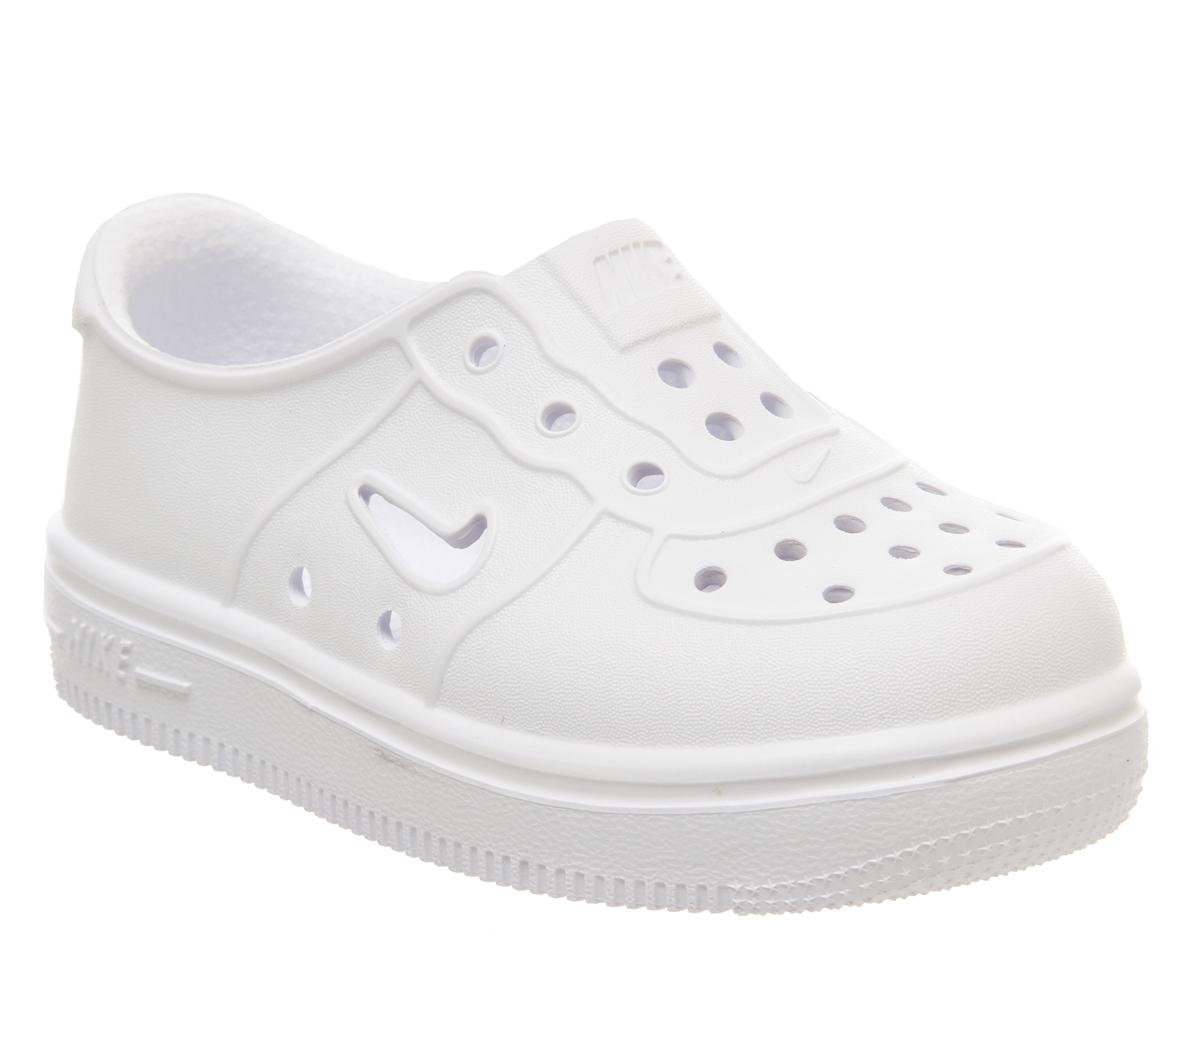 Air Force 1 Foam Toddler Shoes